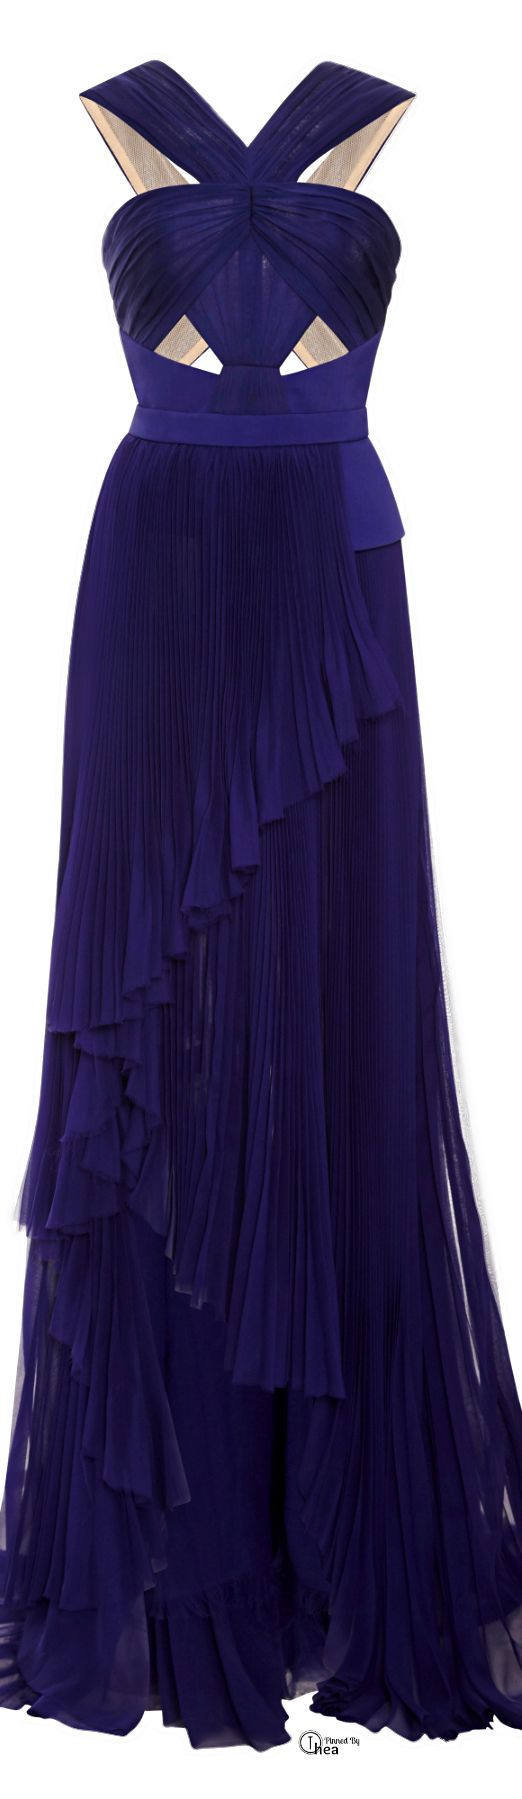 J. Mendel ● Fall 2014, Halter Gown--I'd put this on Kate Winslet...the style would be beautiful on her...